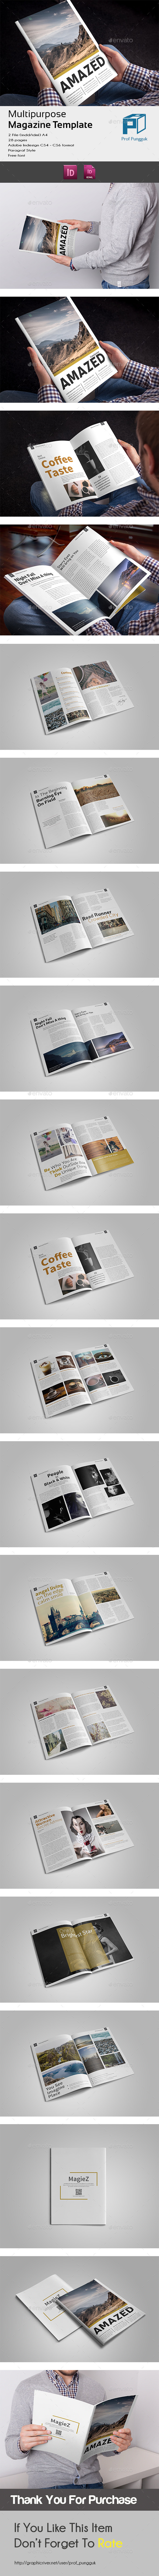 GraphicRiver Magzine Template 28 Pages 11281894